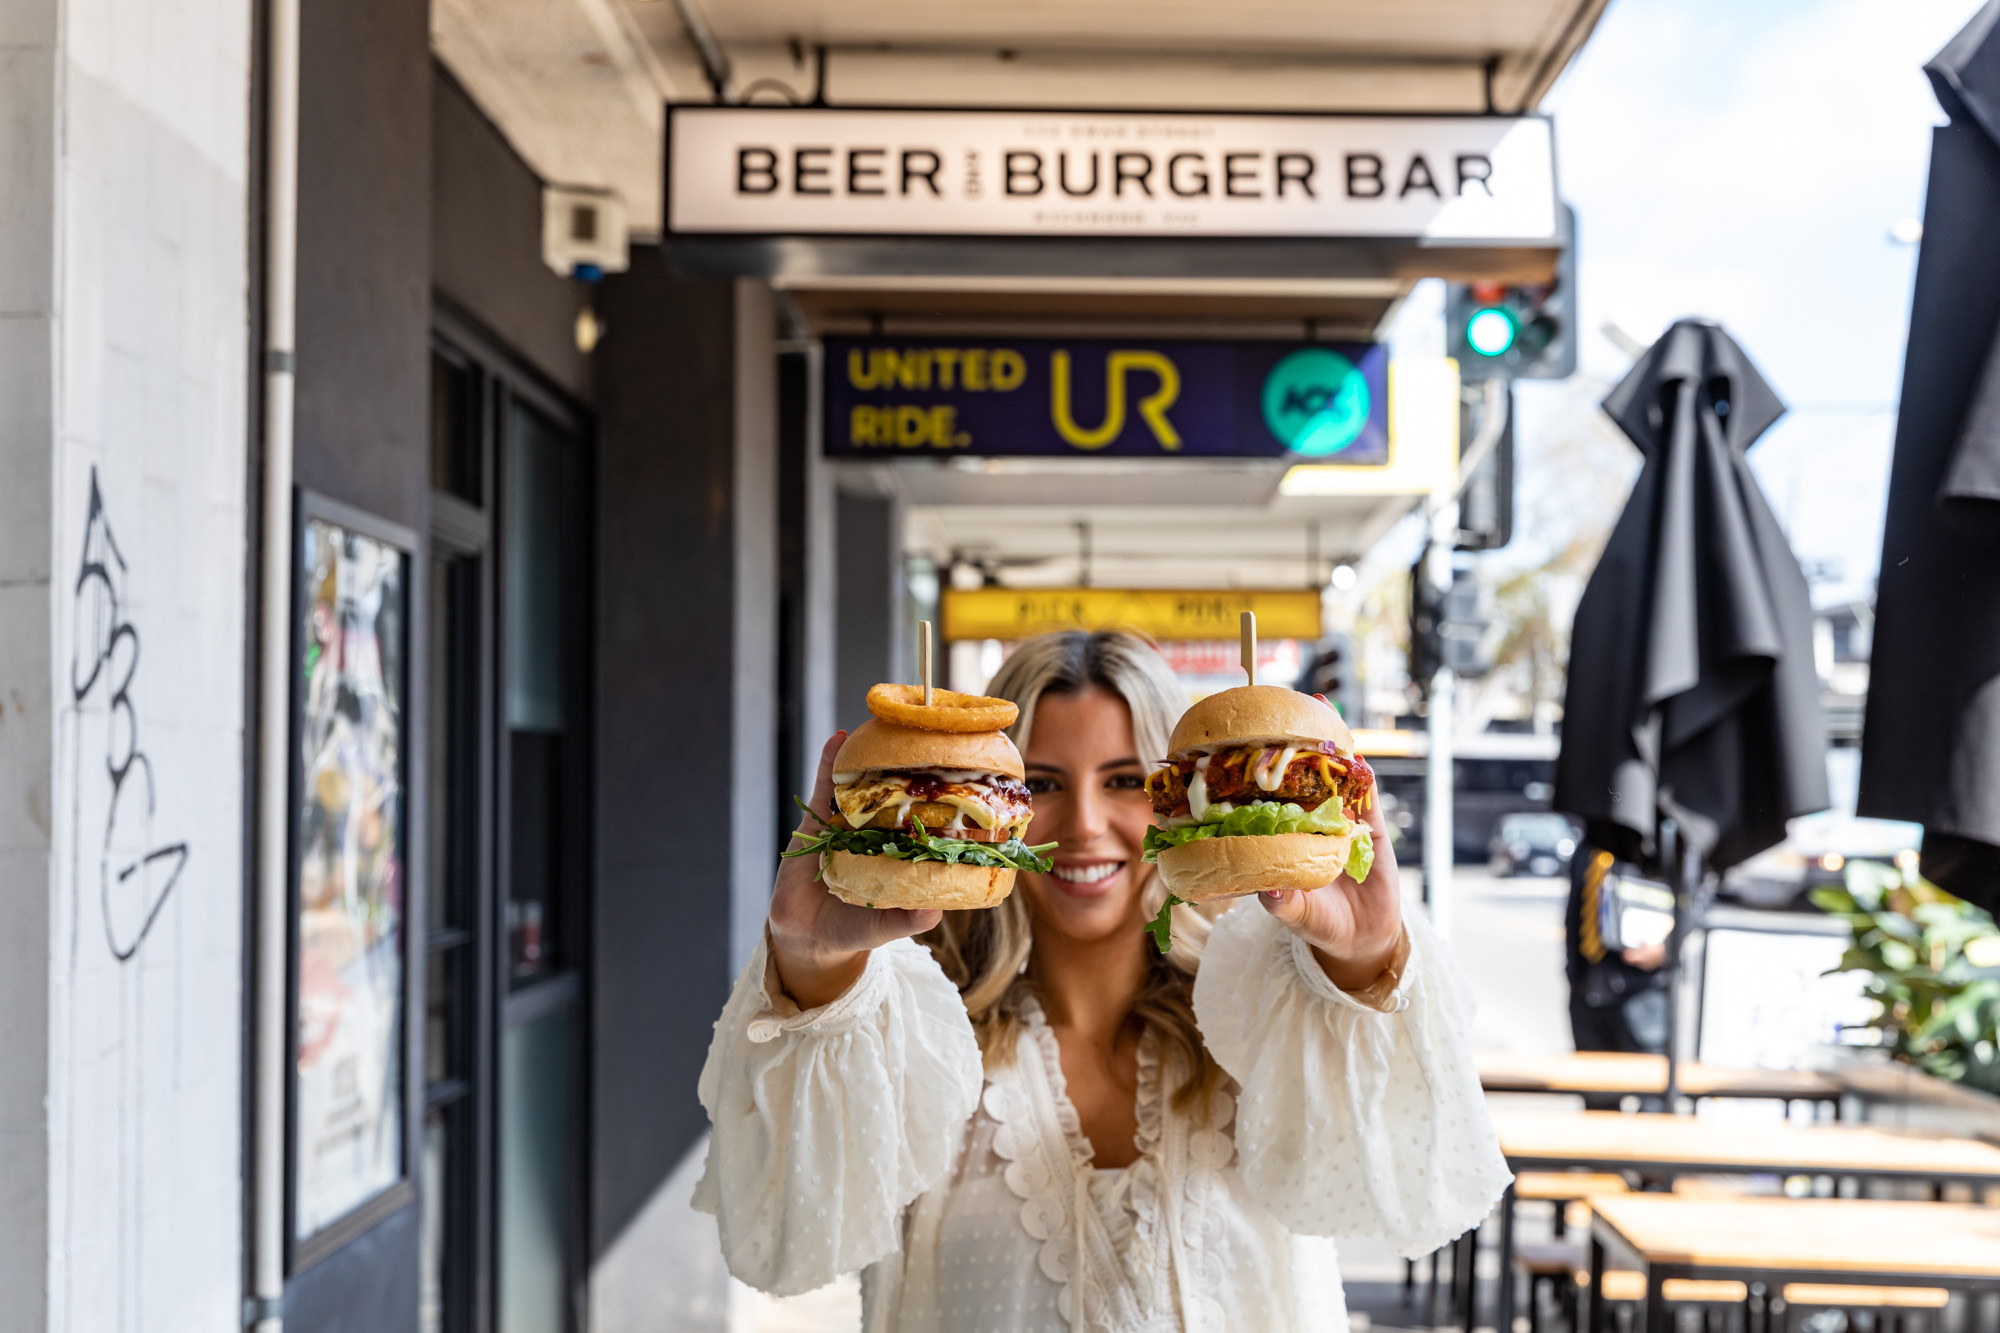 Swan Street S Beer And Burger Bar Milk Bar